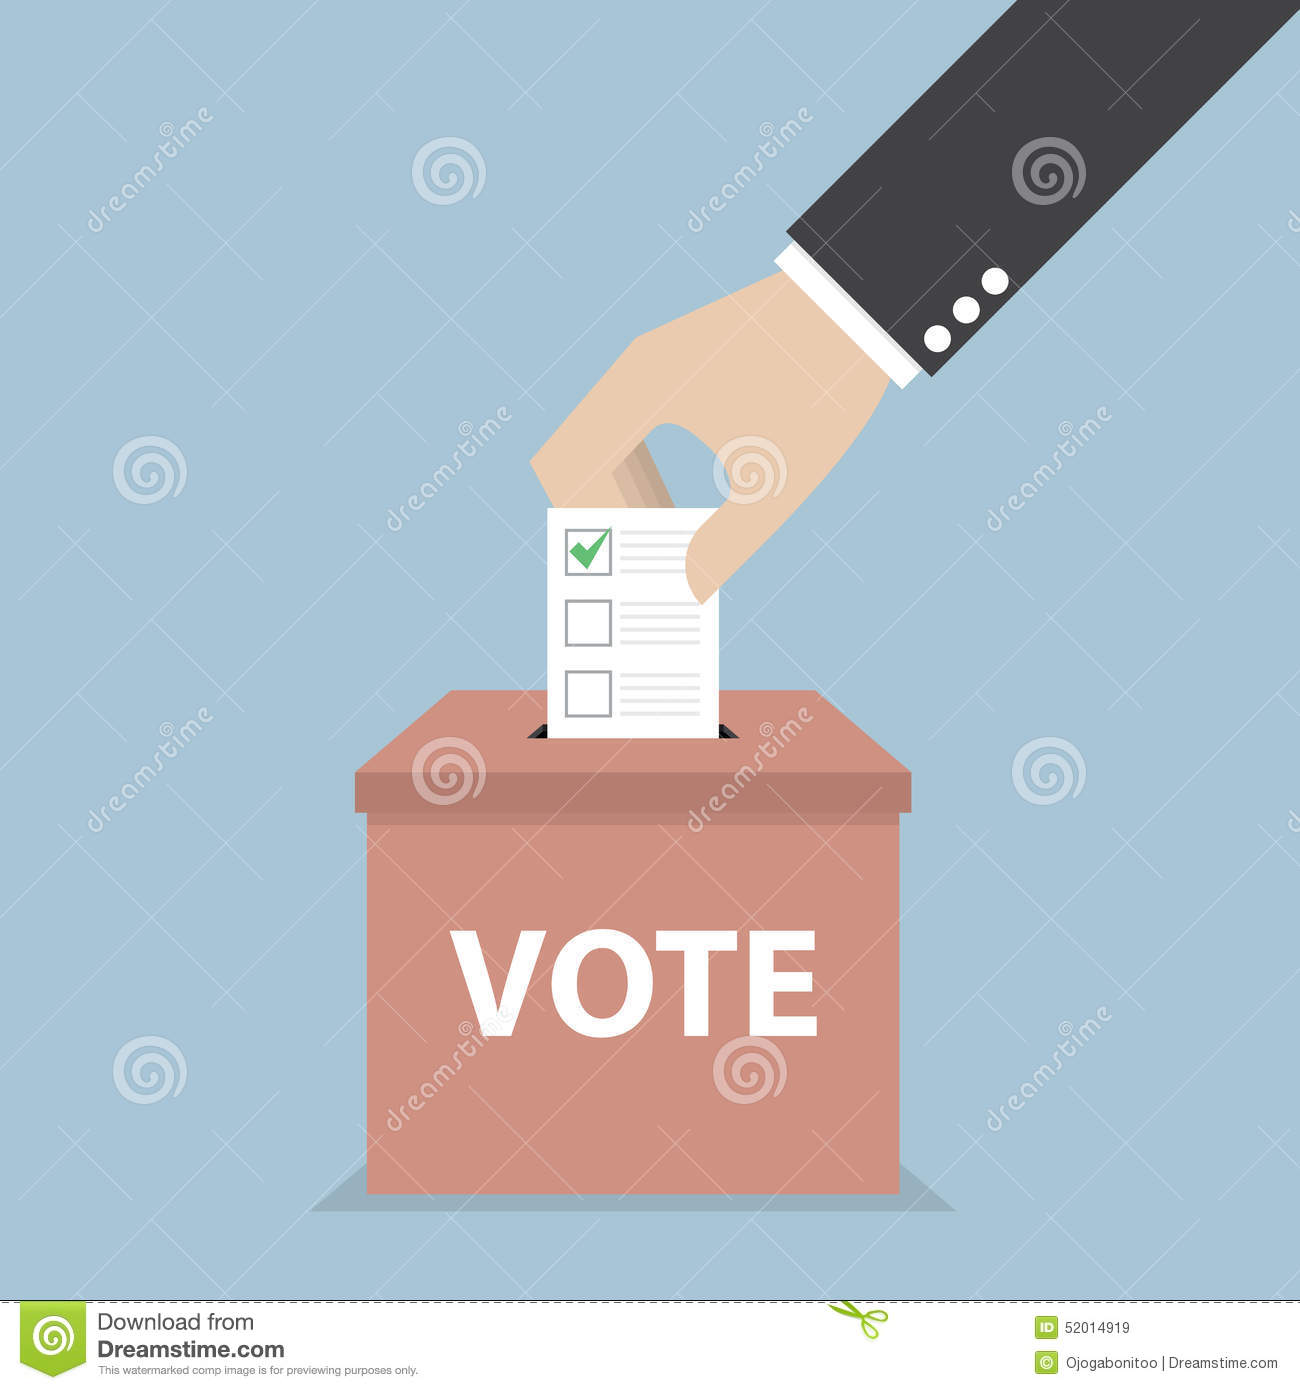 Businessman hand putting voting paper in the ballot box, Voting